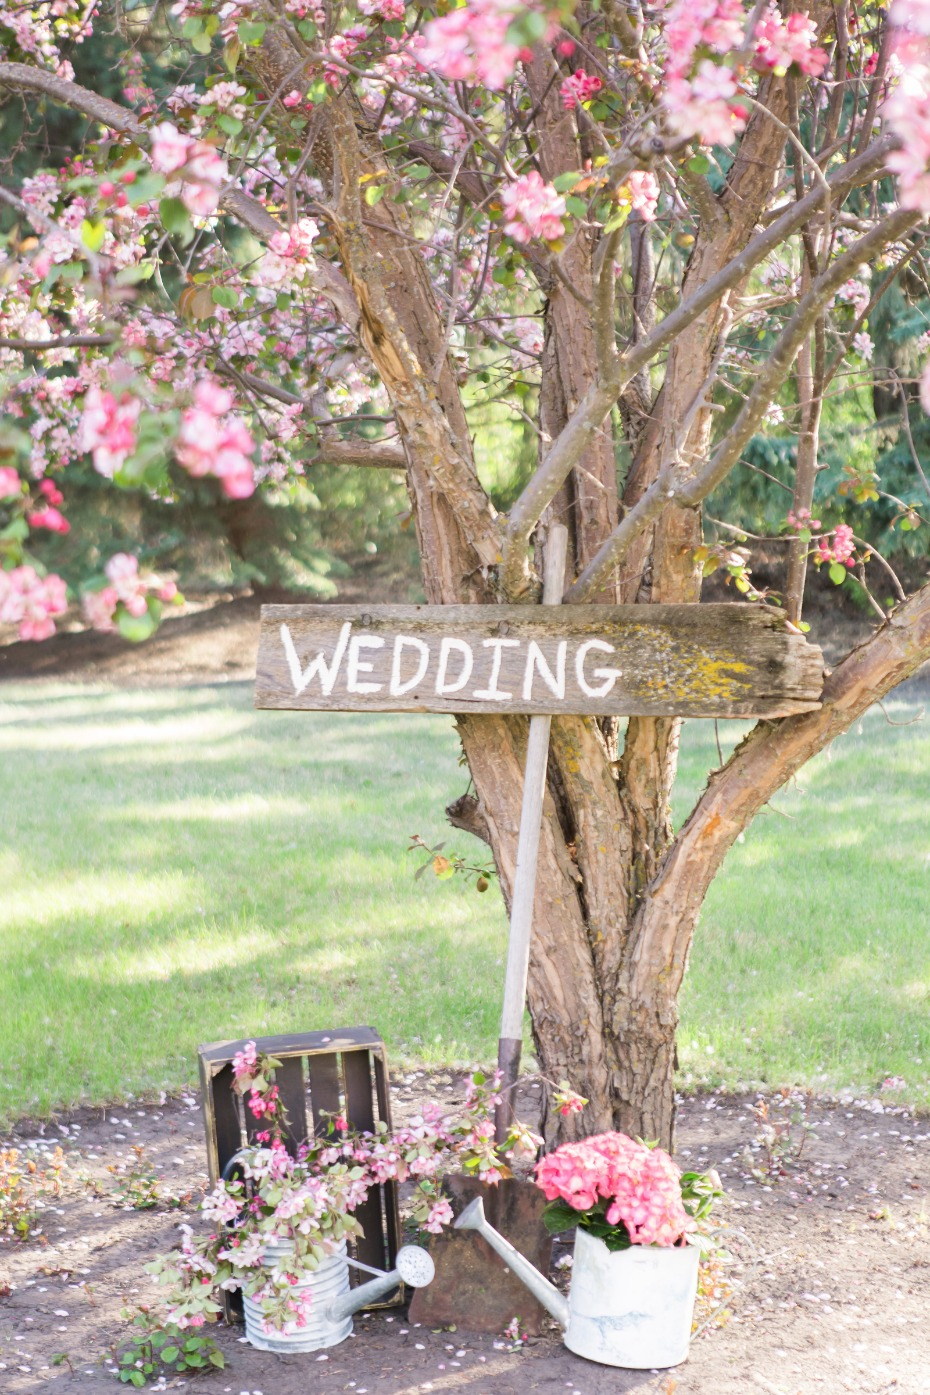 Rustic wedding shovel sign